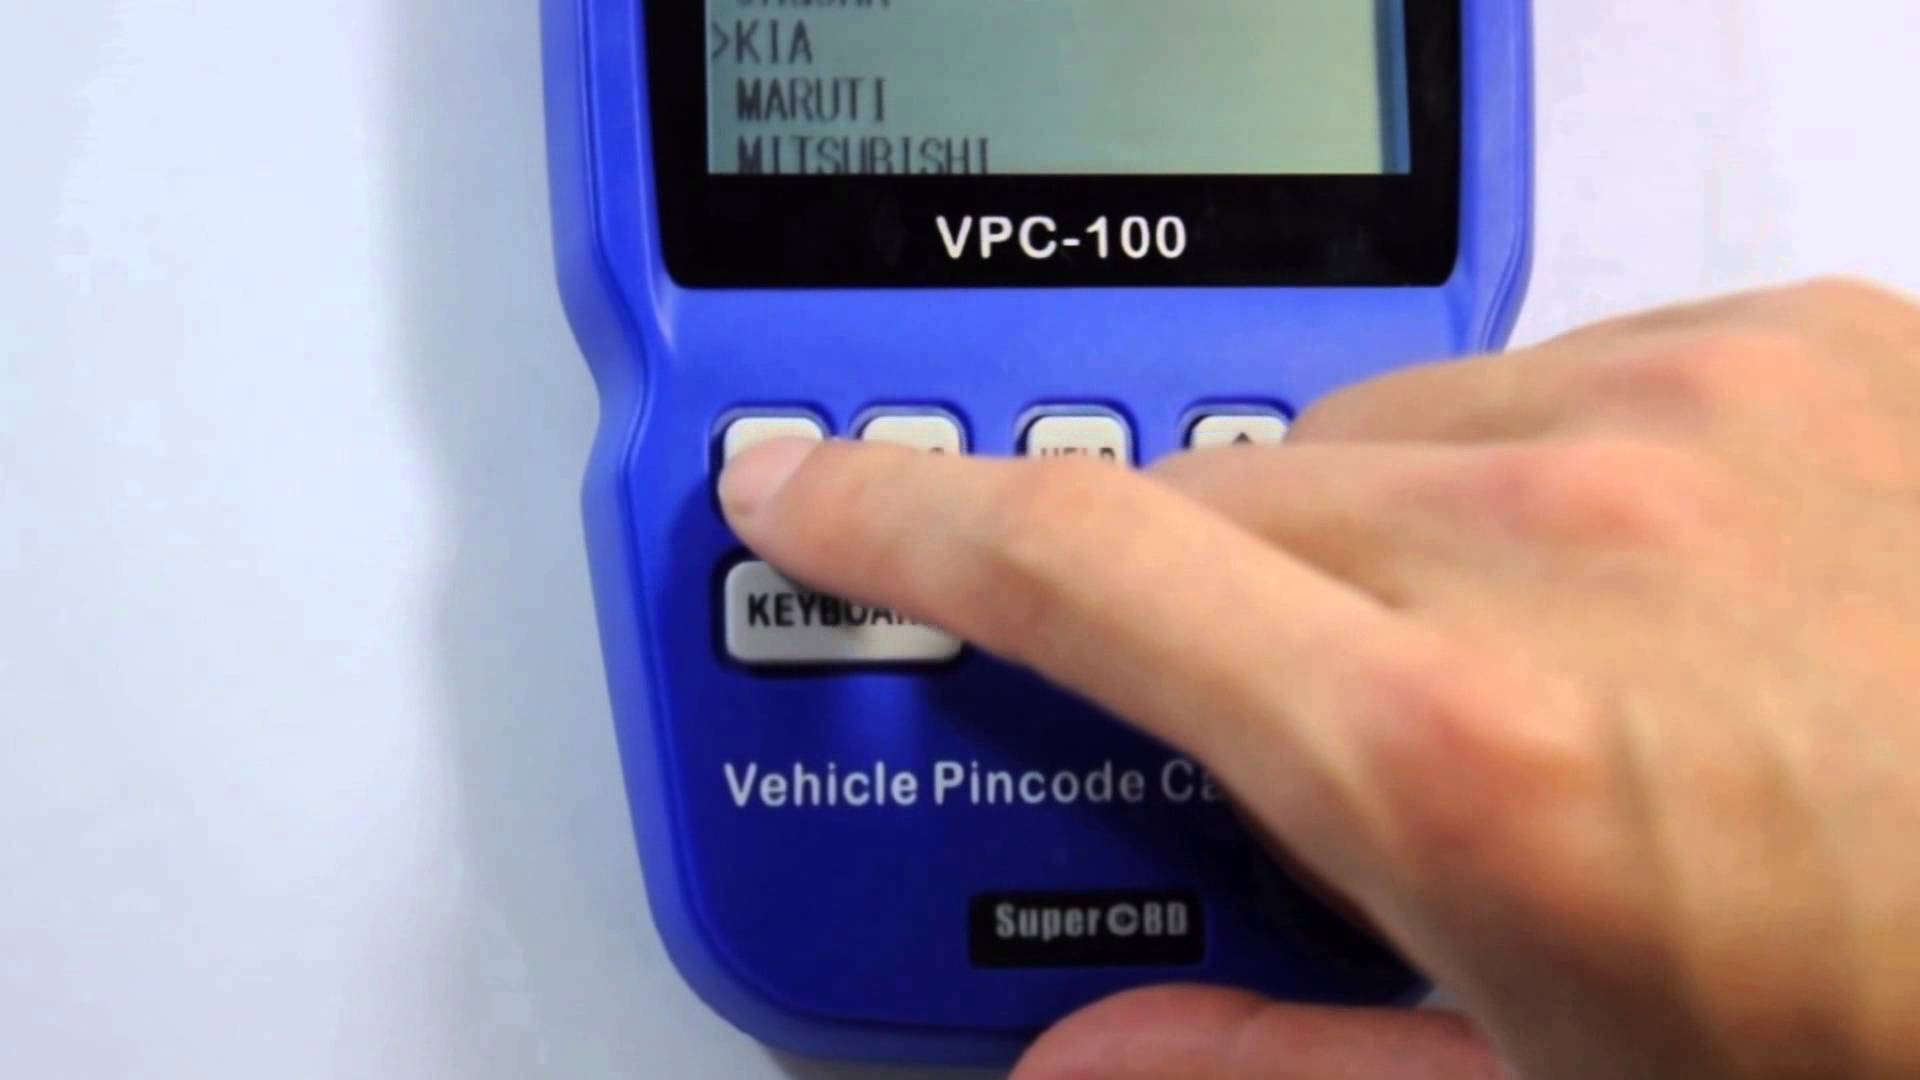 SuperOBD-VPC100-pin-code-reader